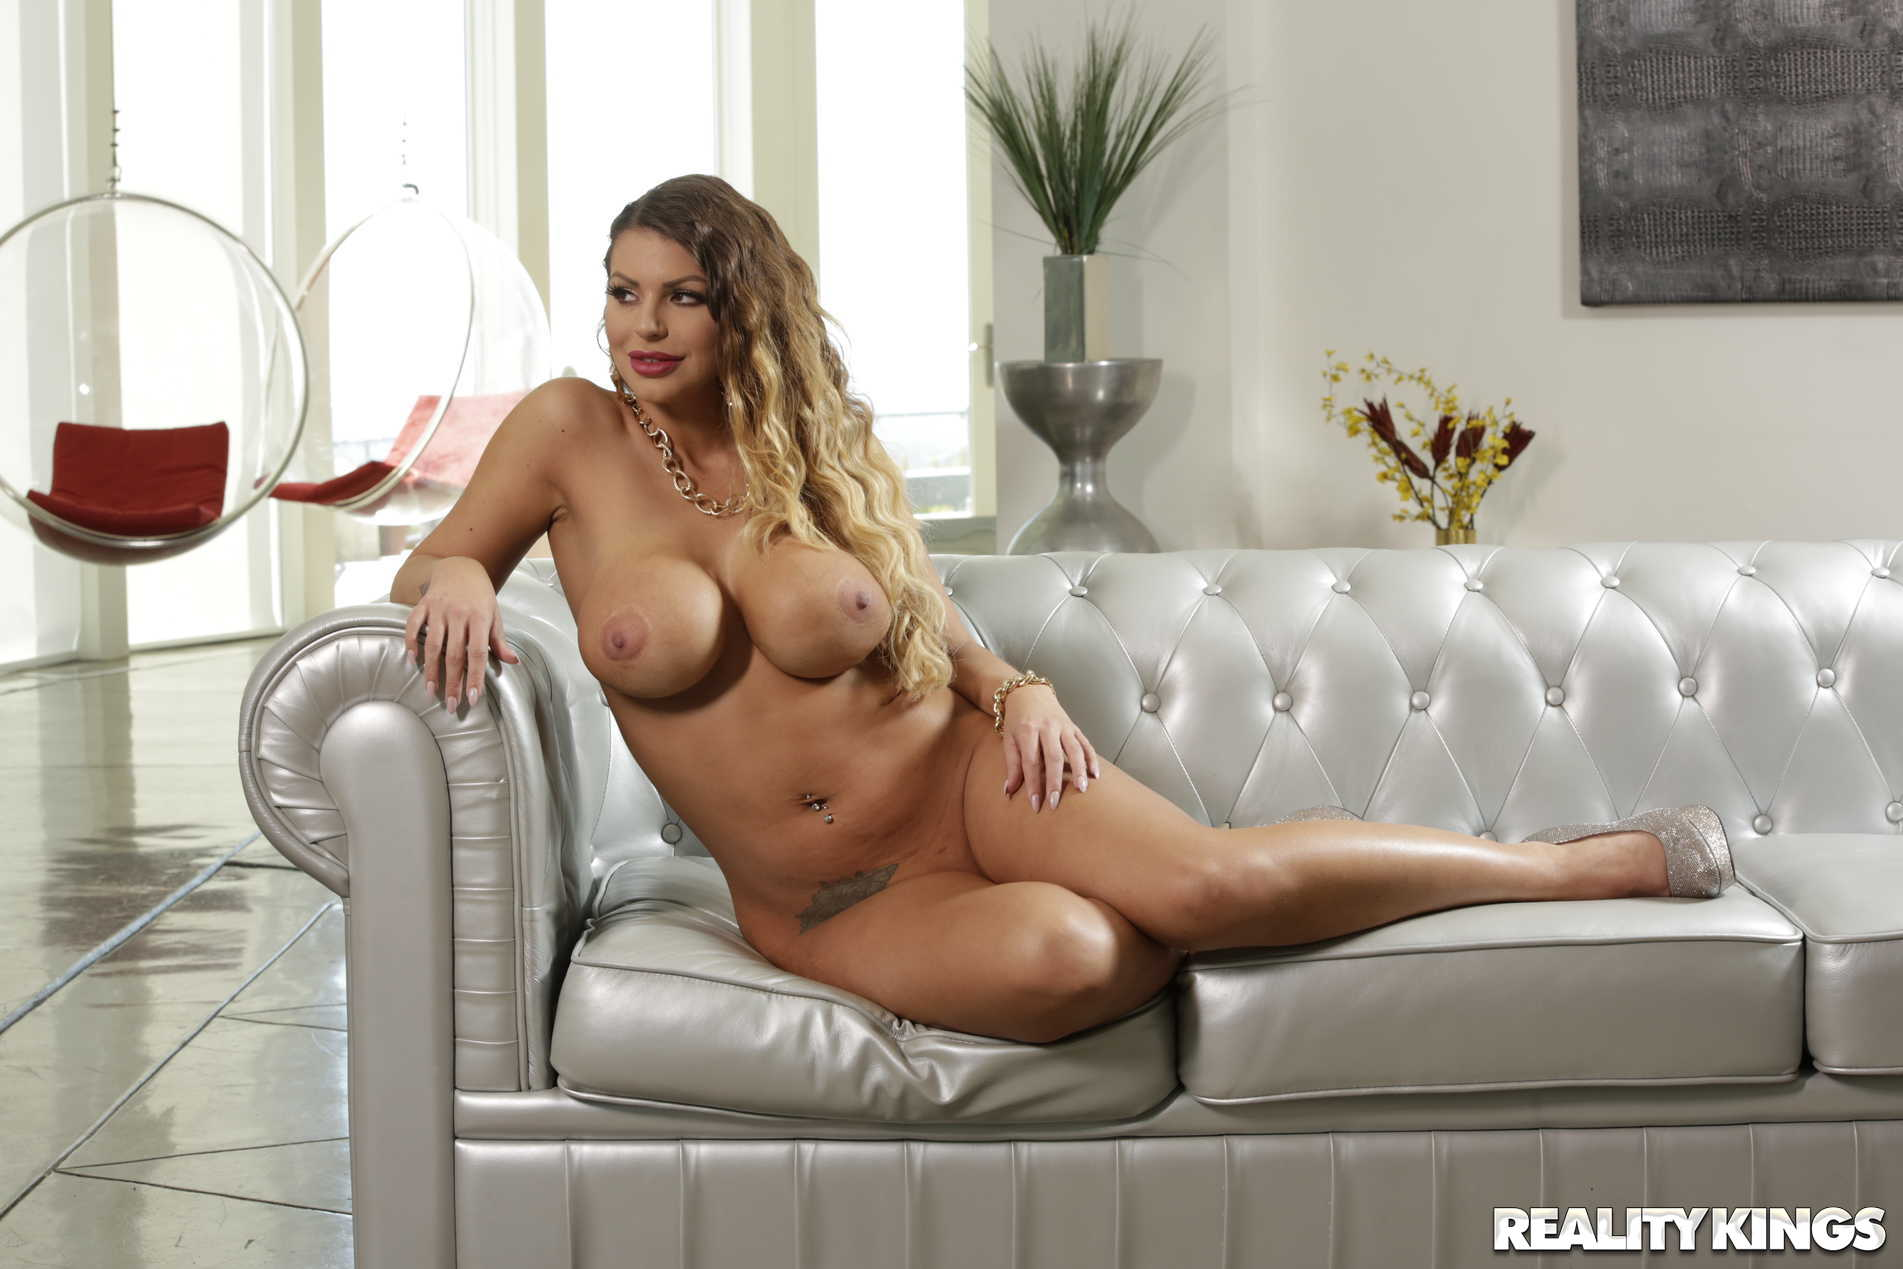 Reality Kings 'Graphic In Traffic' starring Brooklyn Chase (Photo 56)